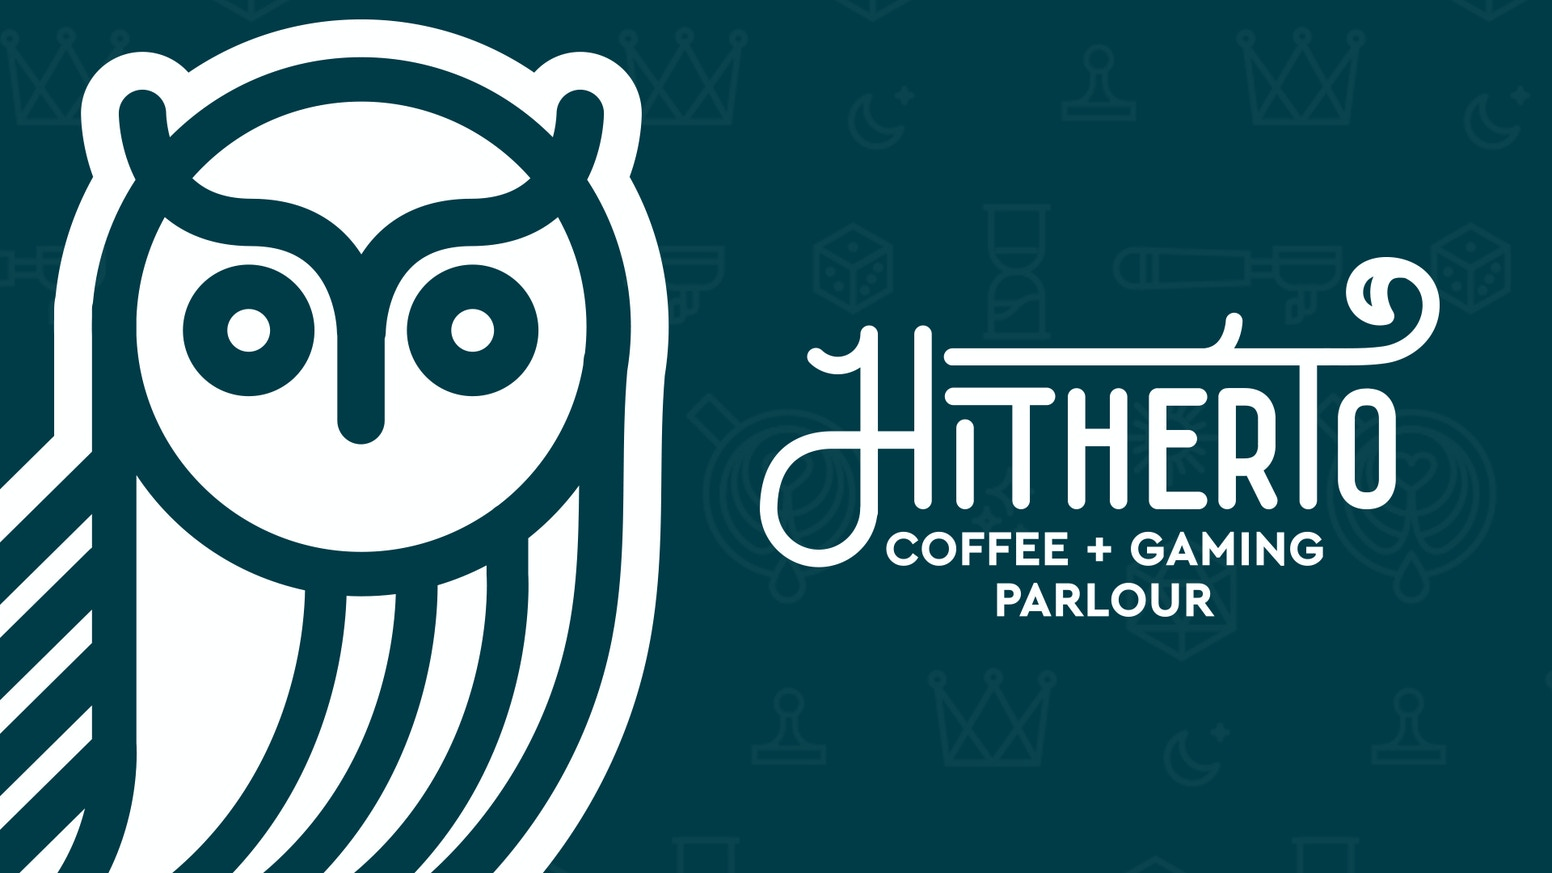 Specialty coffee and hobby board games converge for a unique and fresh concept in central Indiana